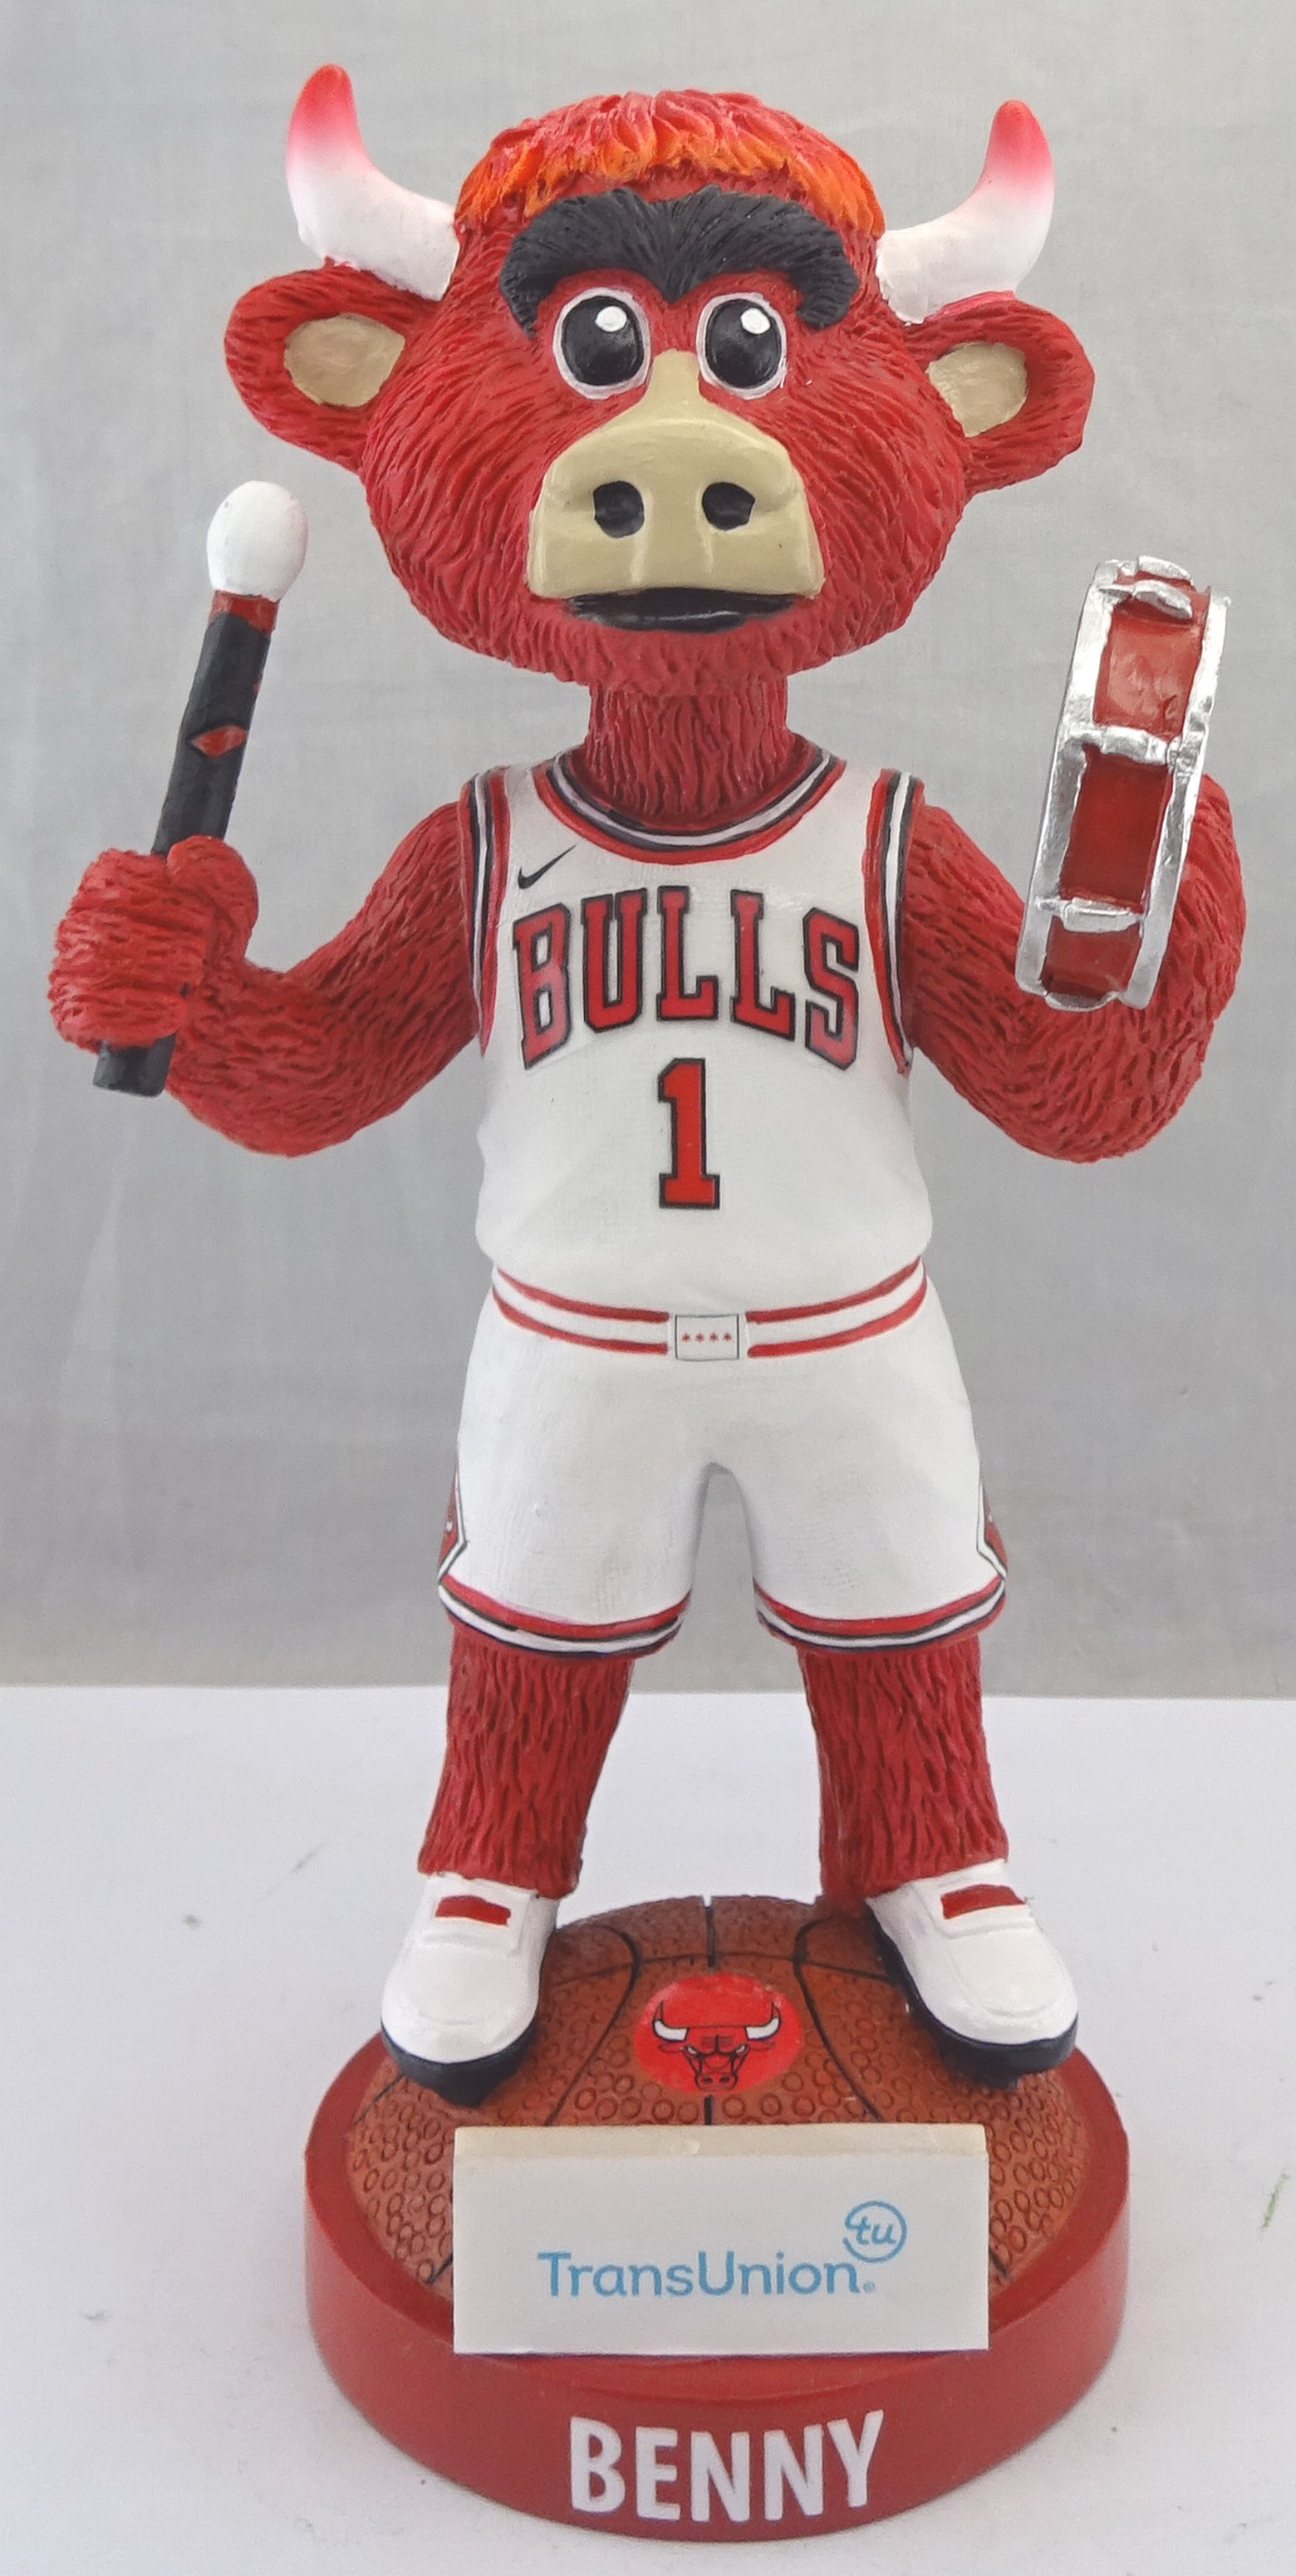 Chicago Bulls - Benny 113173, 7in Bobblehead (1).jpg